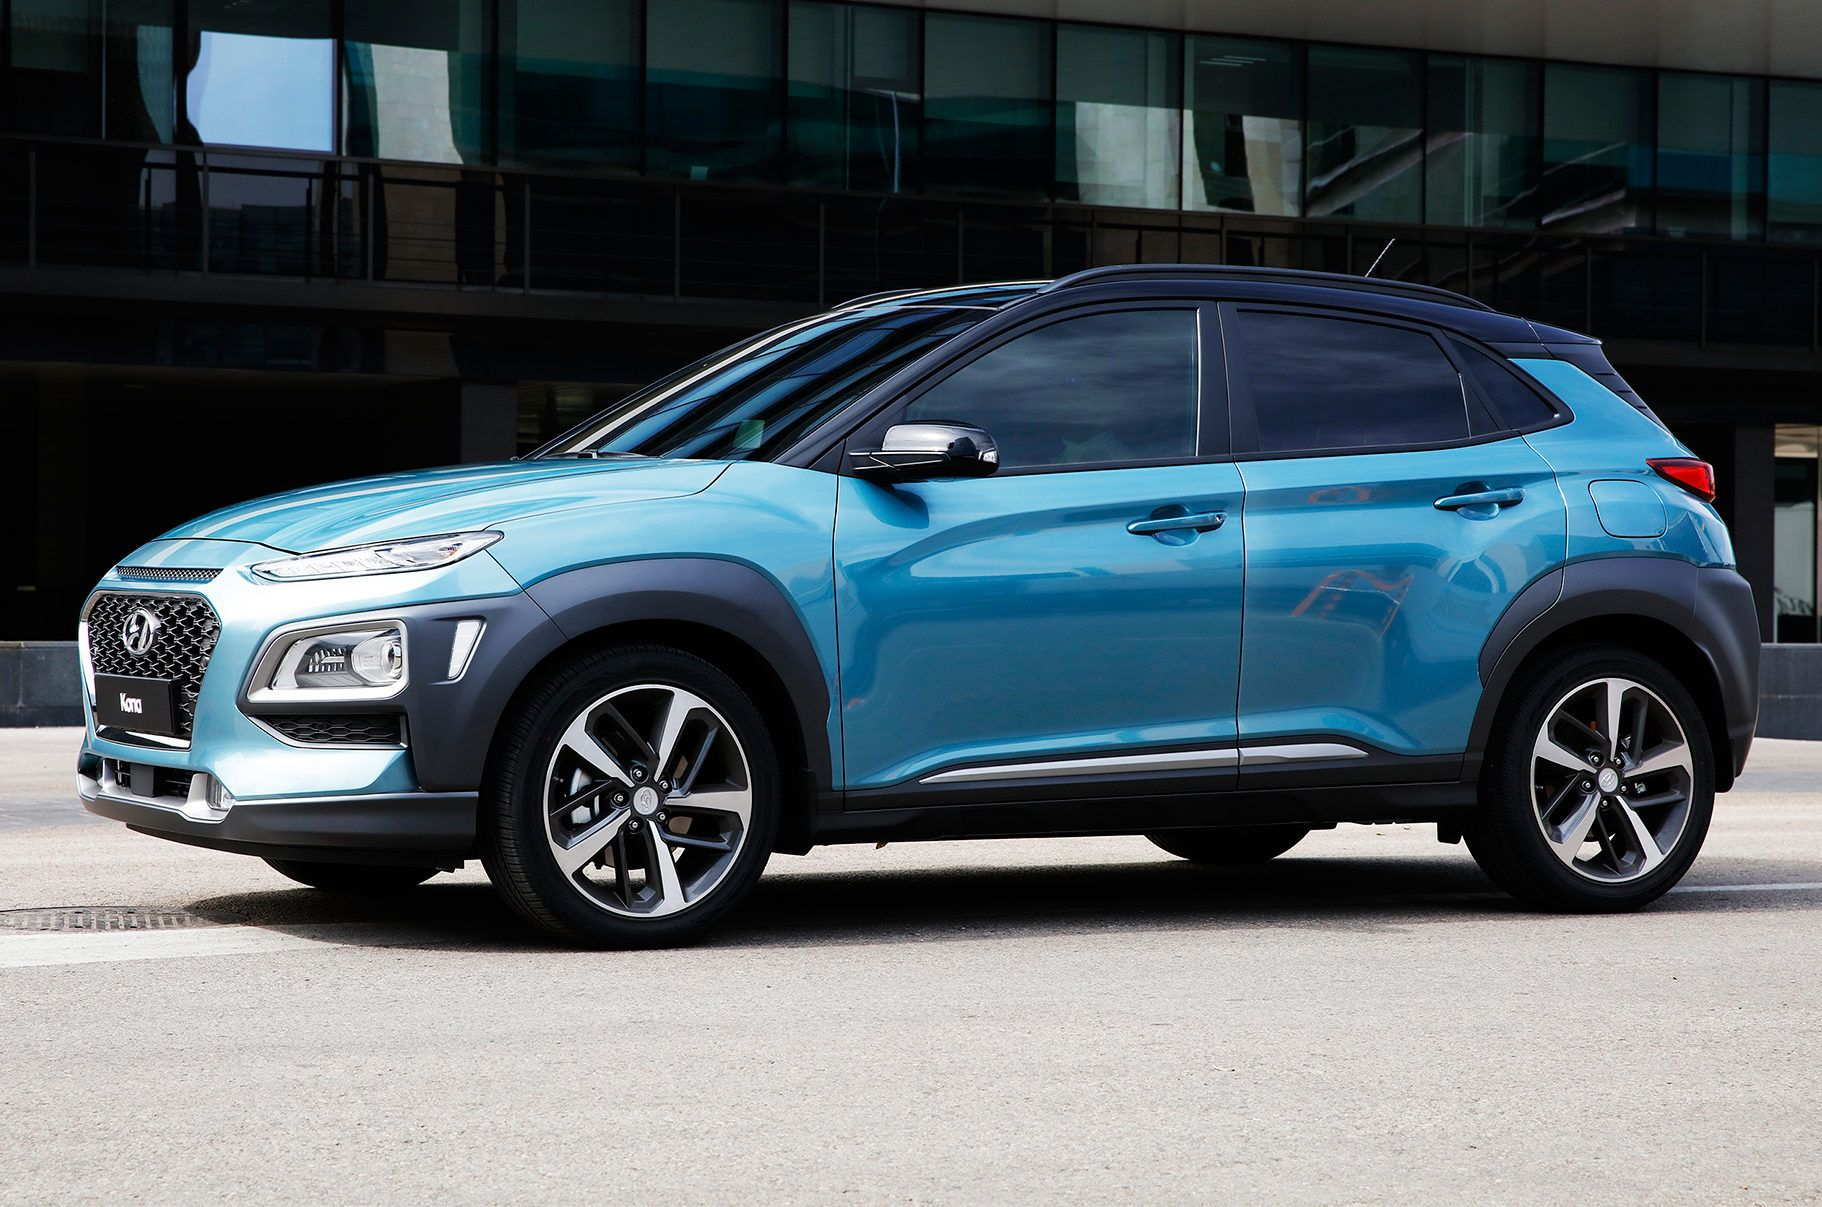 Hyundai Is Counting On The Subcompact Suv To Bolster Global S